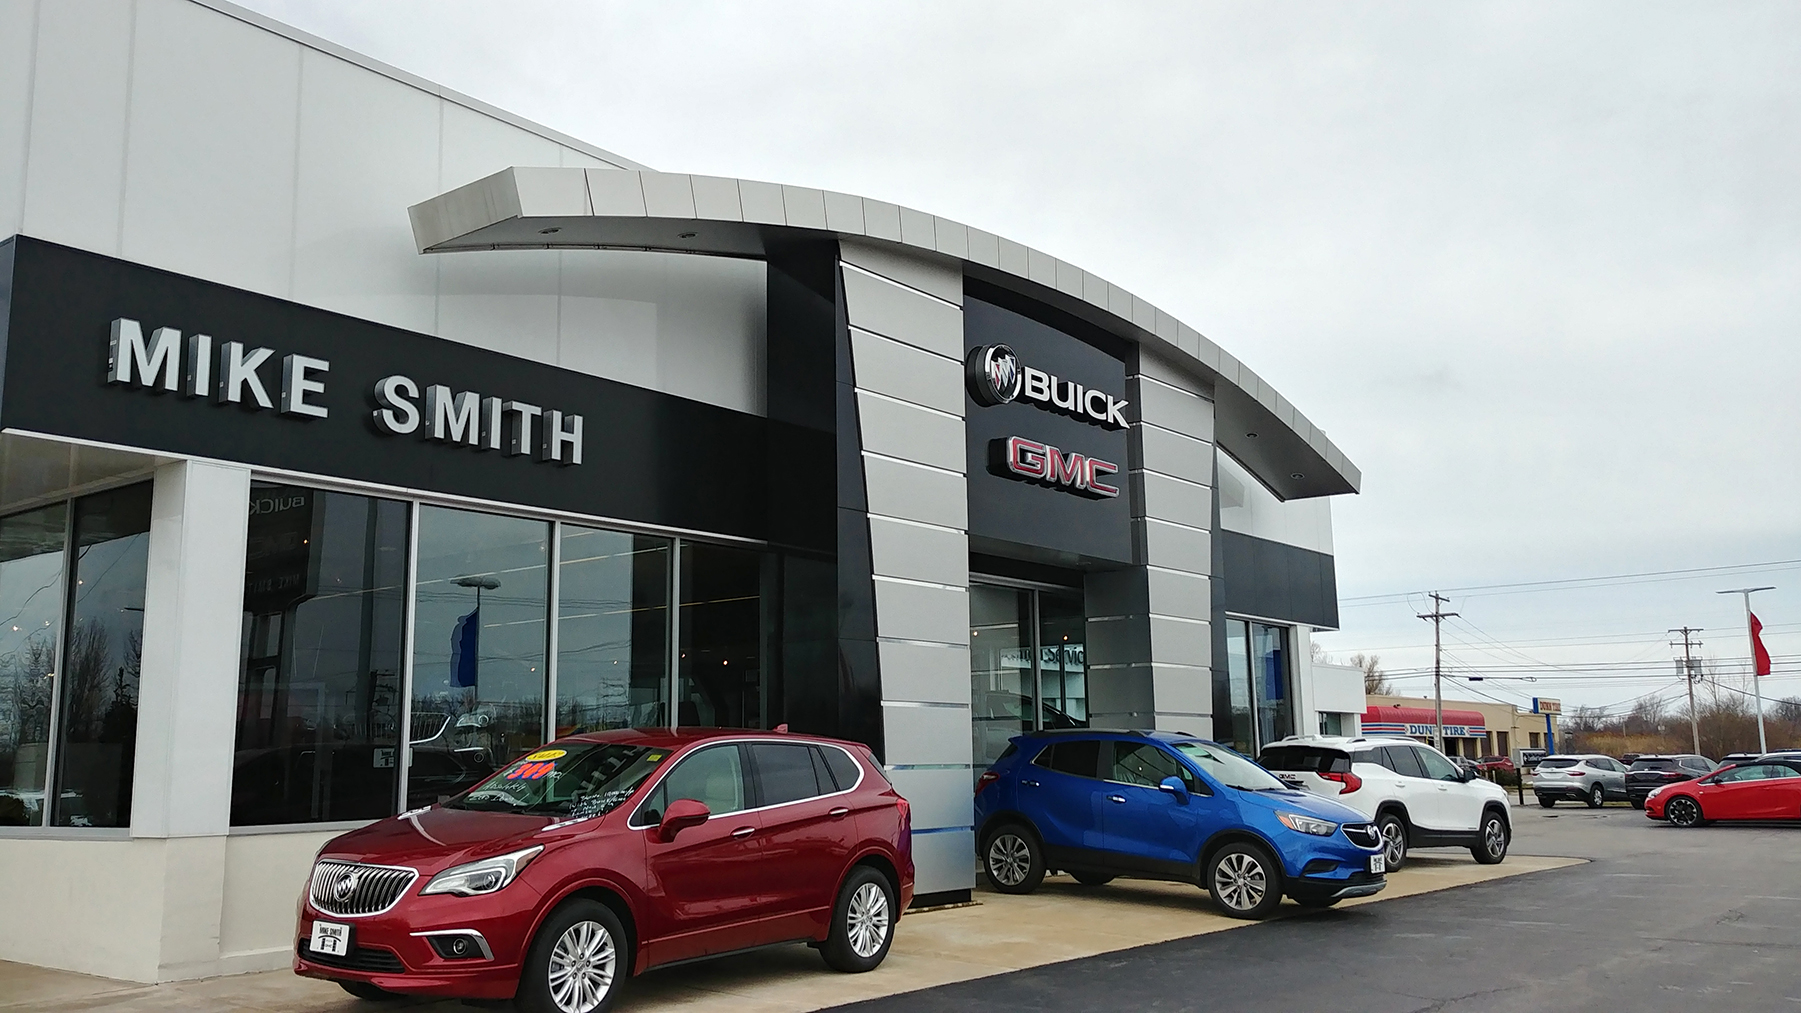 http://abp-distributors.com/wp-content/uploads/2018/04/Mike-Smith-GMC-Buick-1.jpg